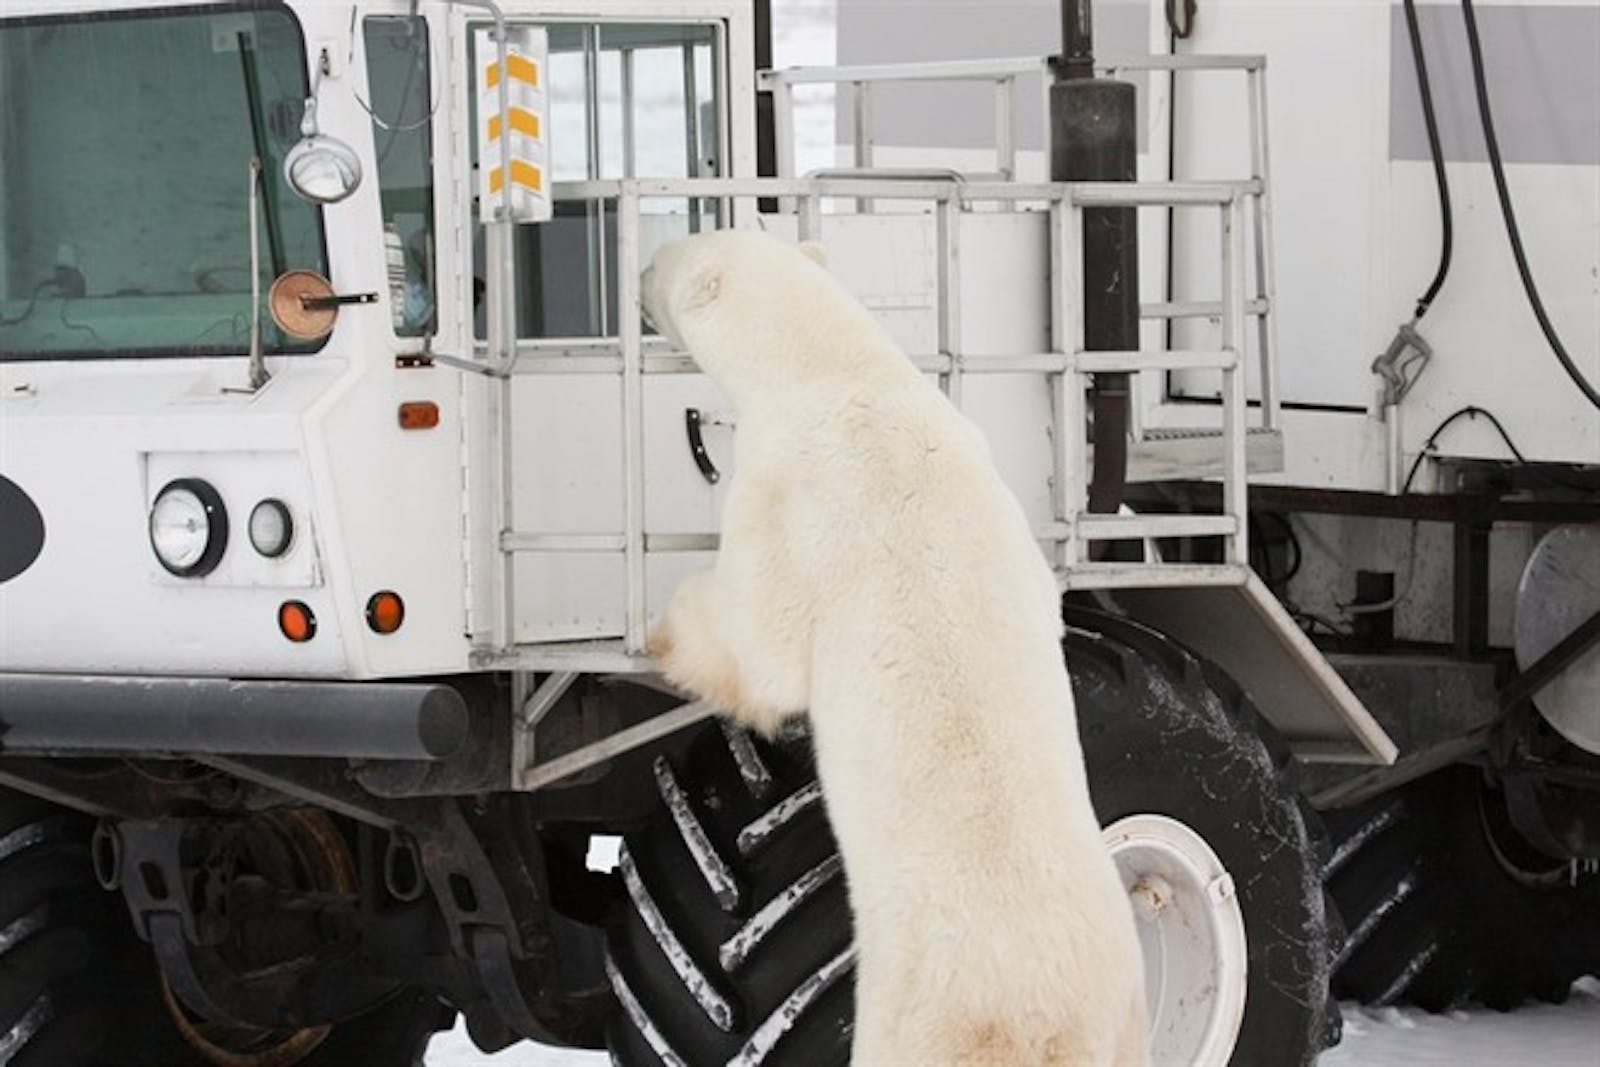 Polar Bear Looking in To A Tundra Buggy®